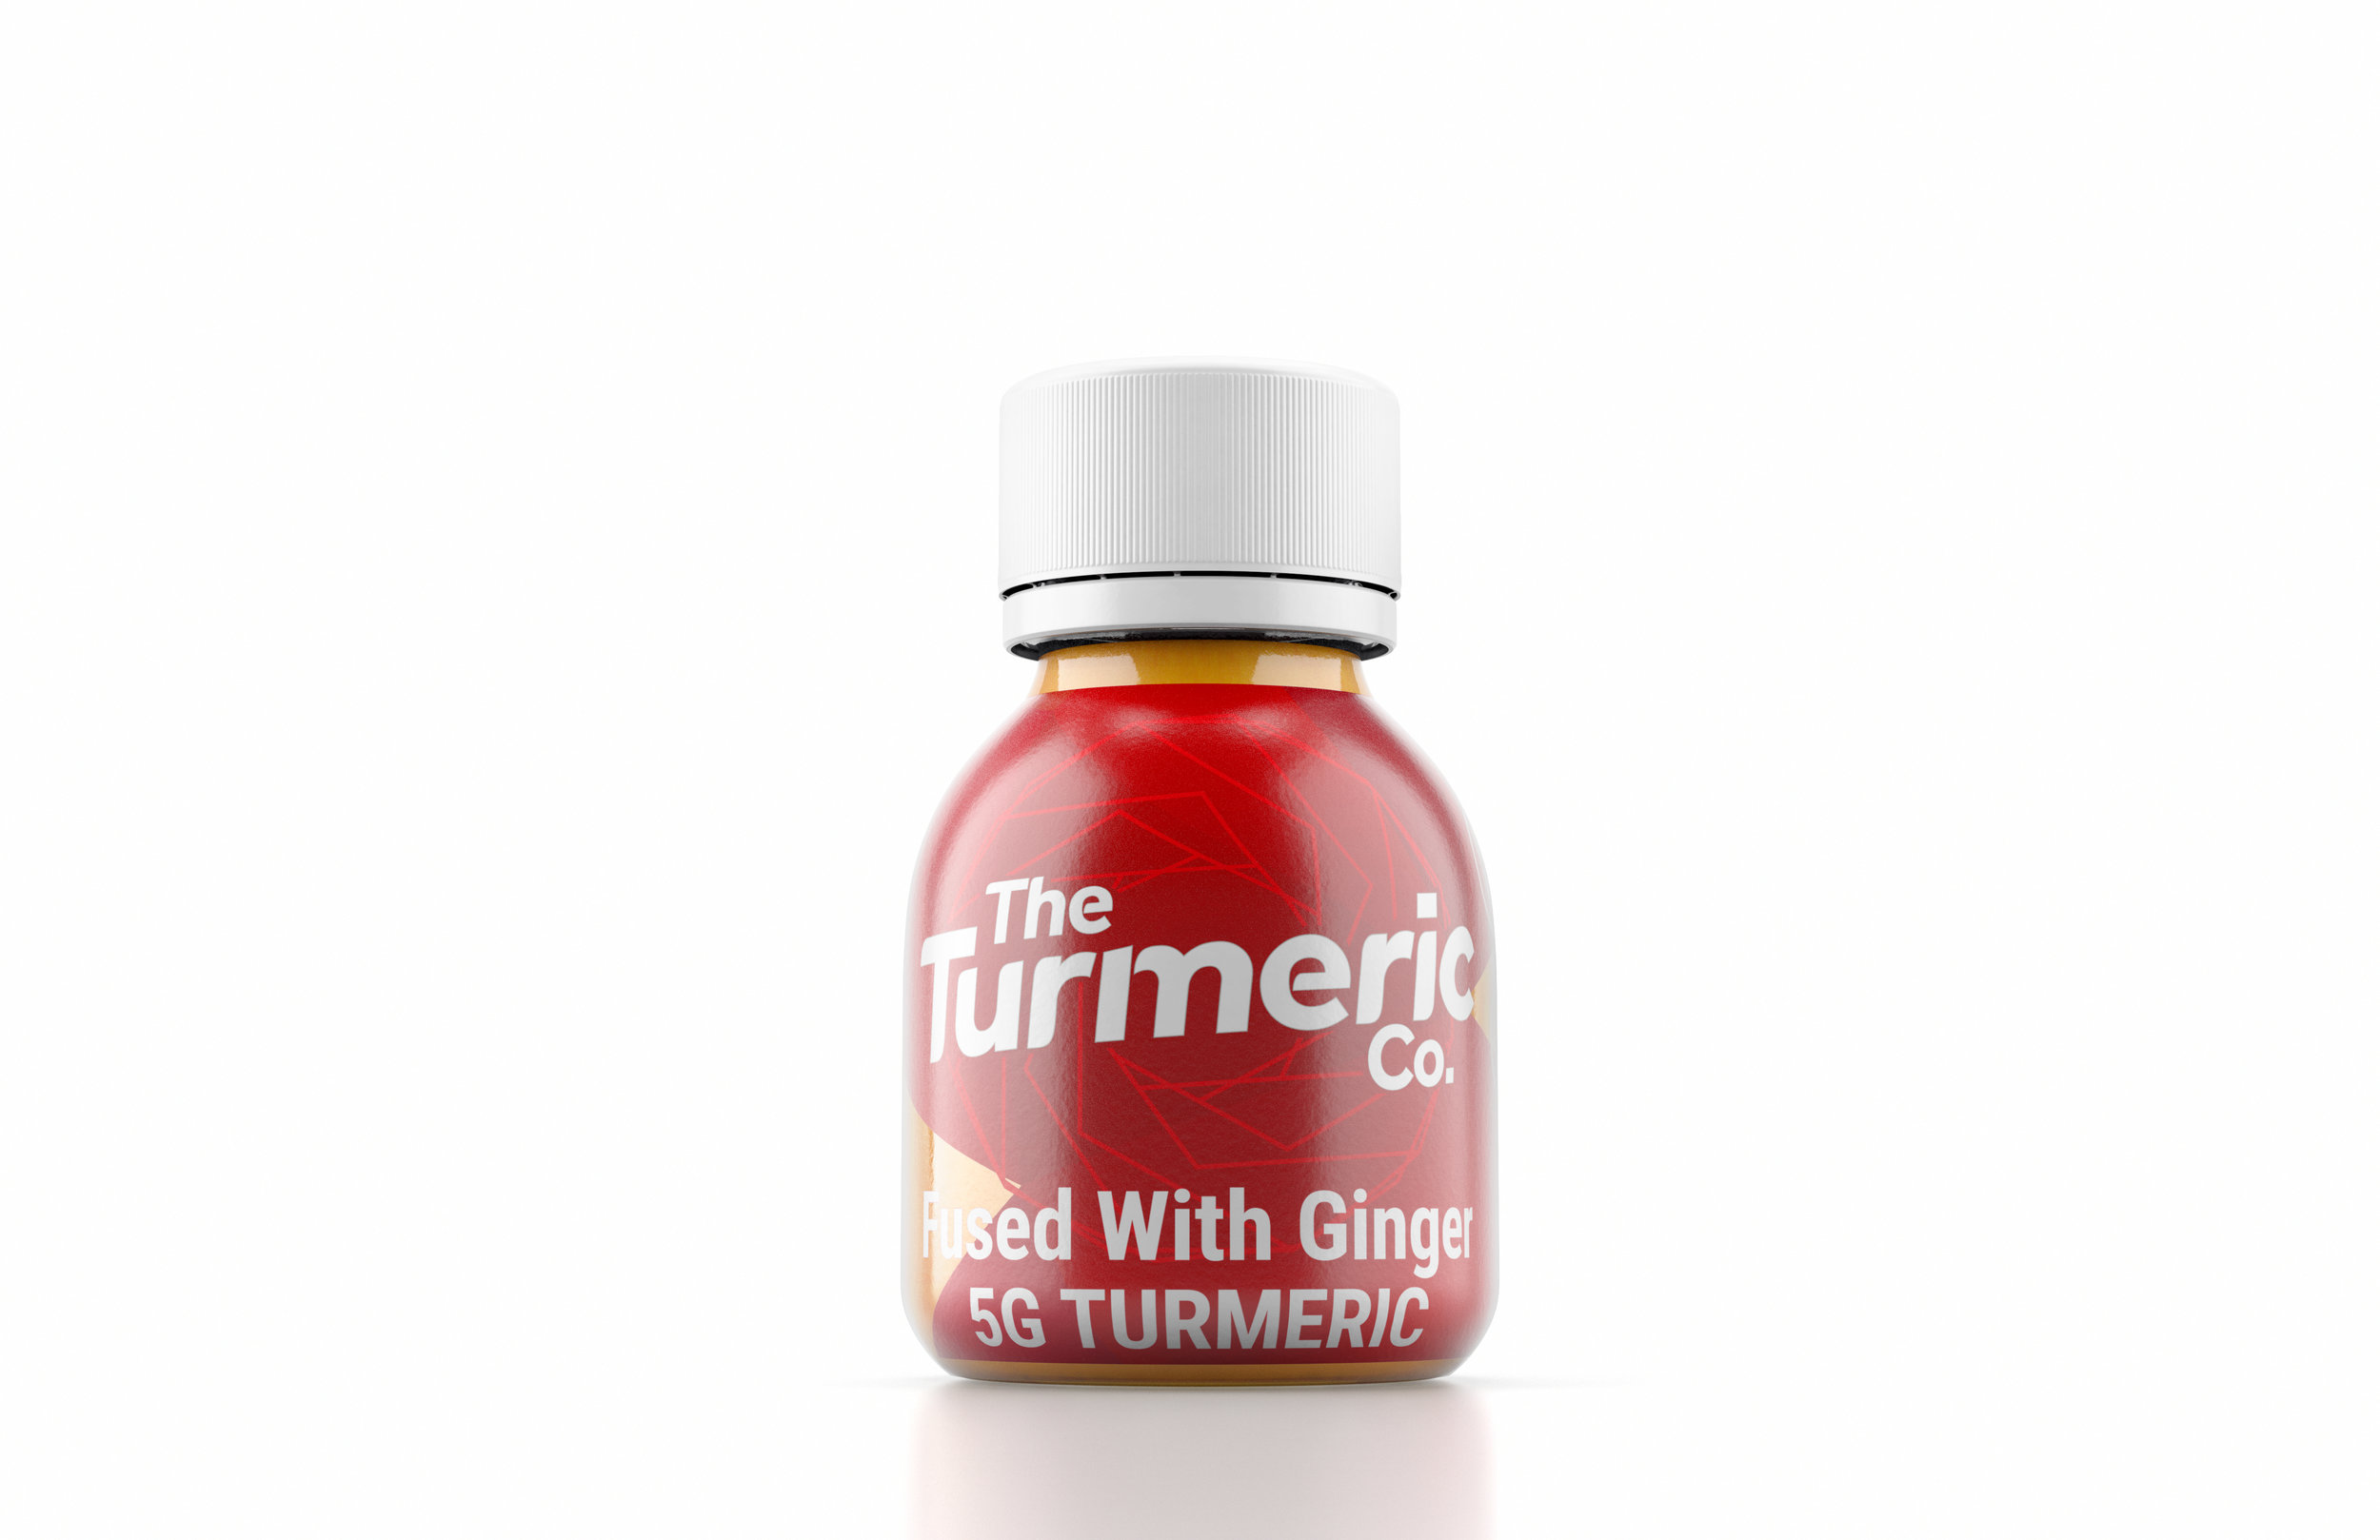 180427_MM_TURMERIC_BOTTLE_GING_WHT_CMYK_HR_LV.jpg